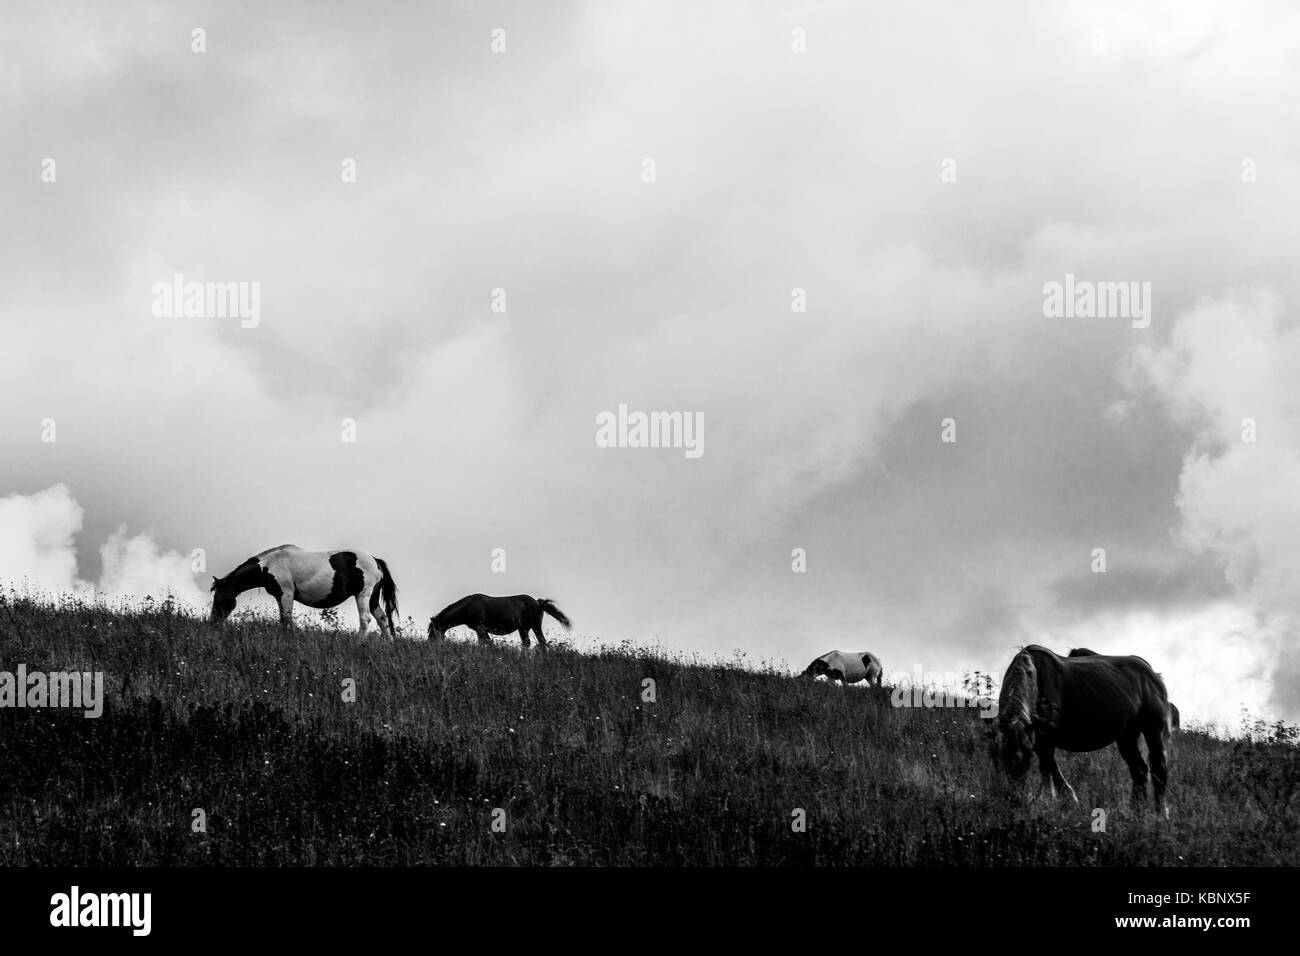 Horses pasturing on top of a hill, beneath an overcast, moody sky - Stock Image